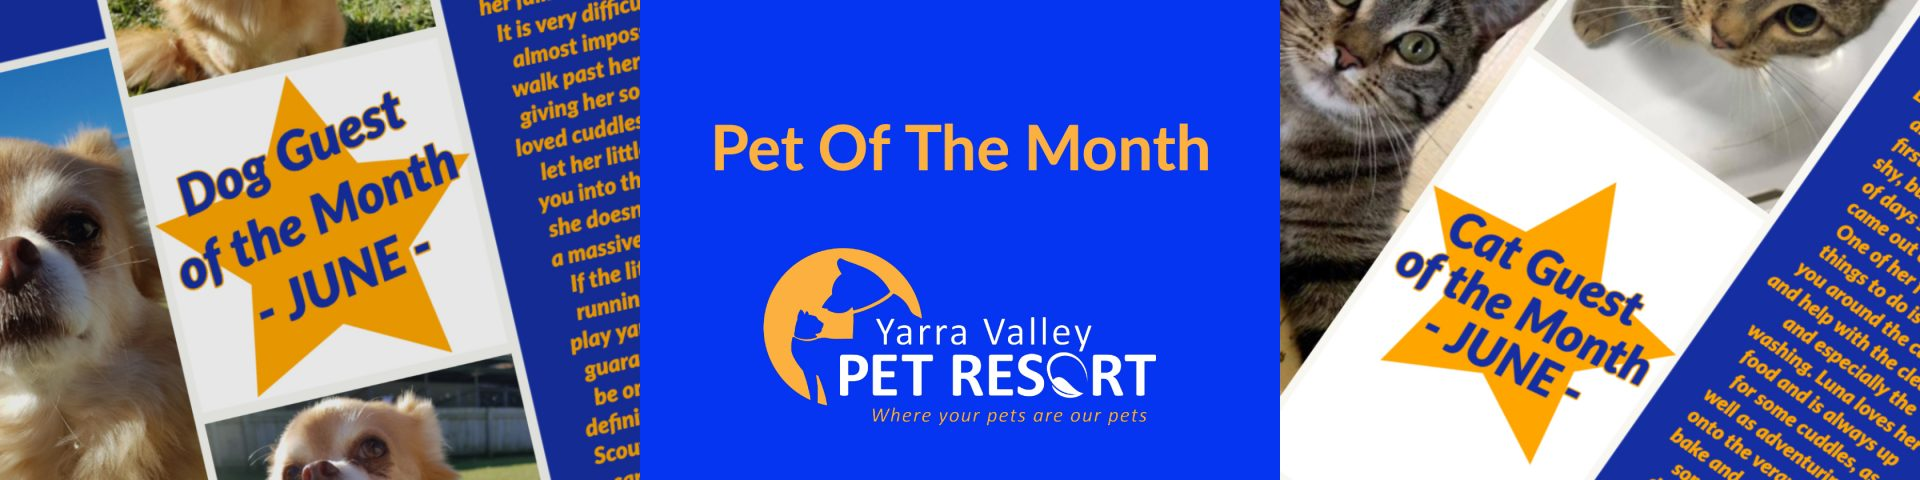 PET OF THE MONTH AWARD – Yarra Valley Pet Resort